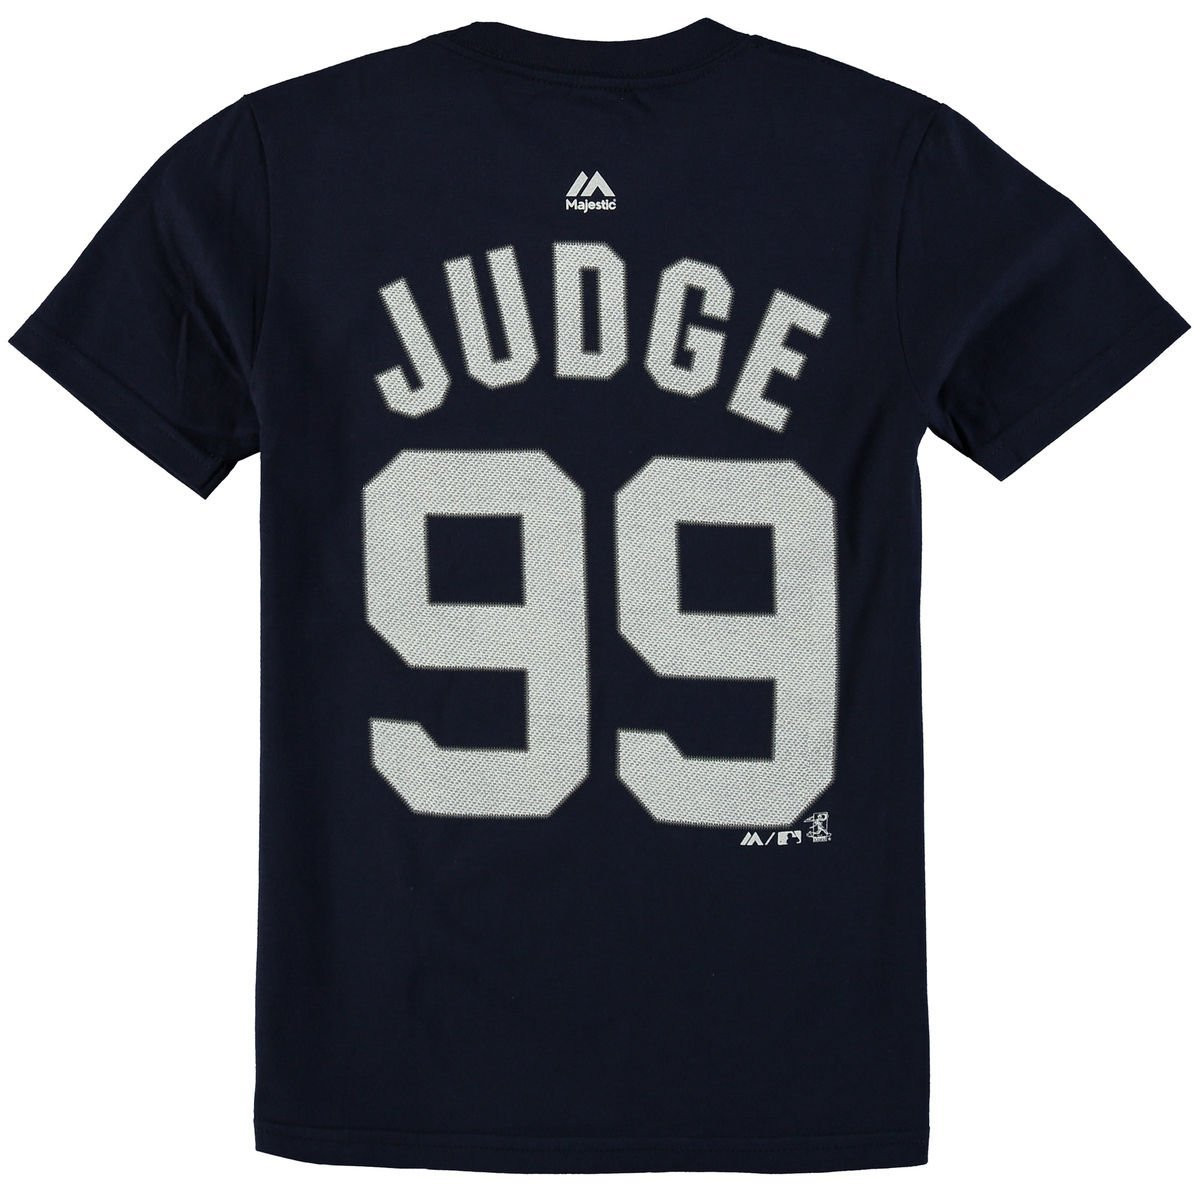 info for 3b236 94f8f Aaron Judge New York Yankees #99 MLB Youth Player Name & Number T-shirt